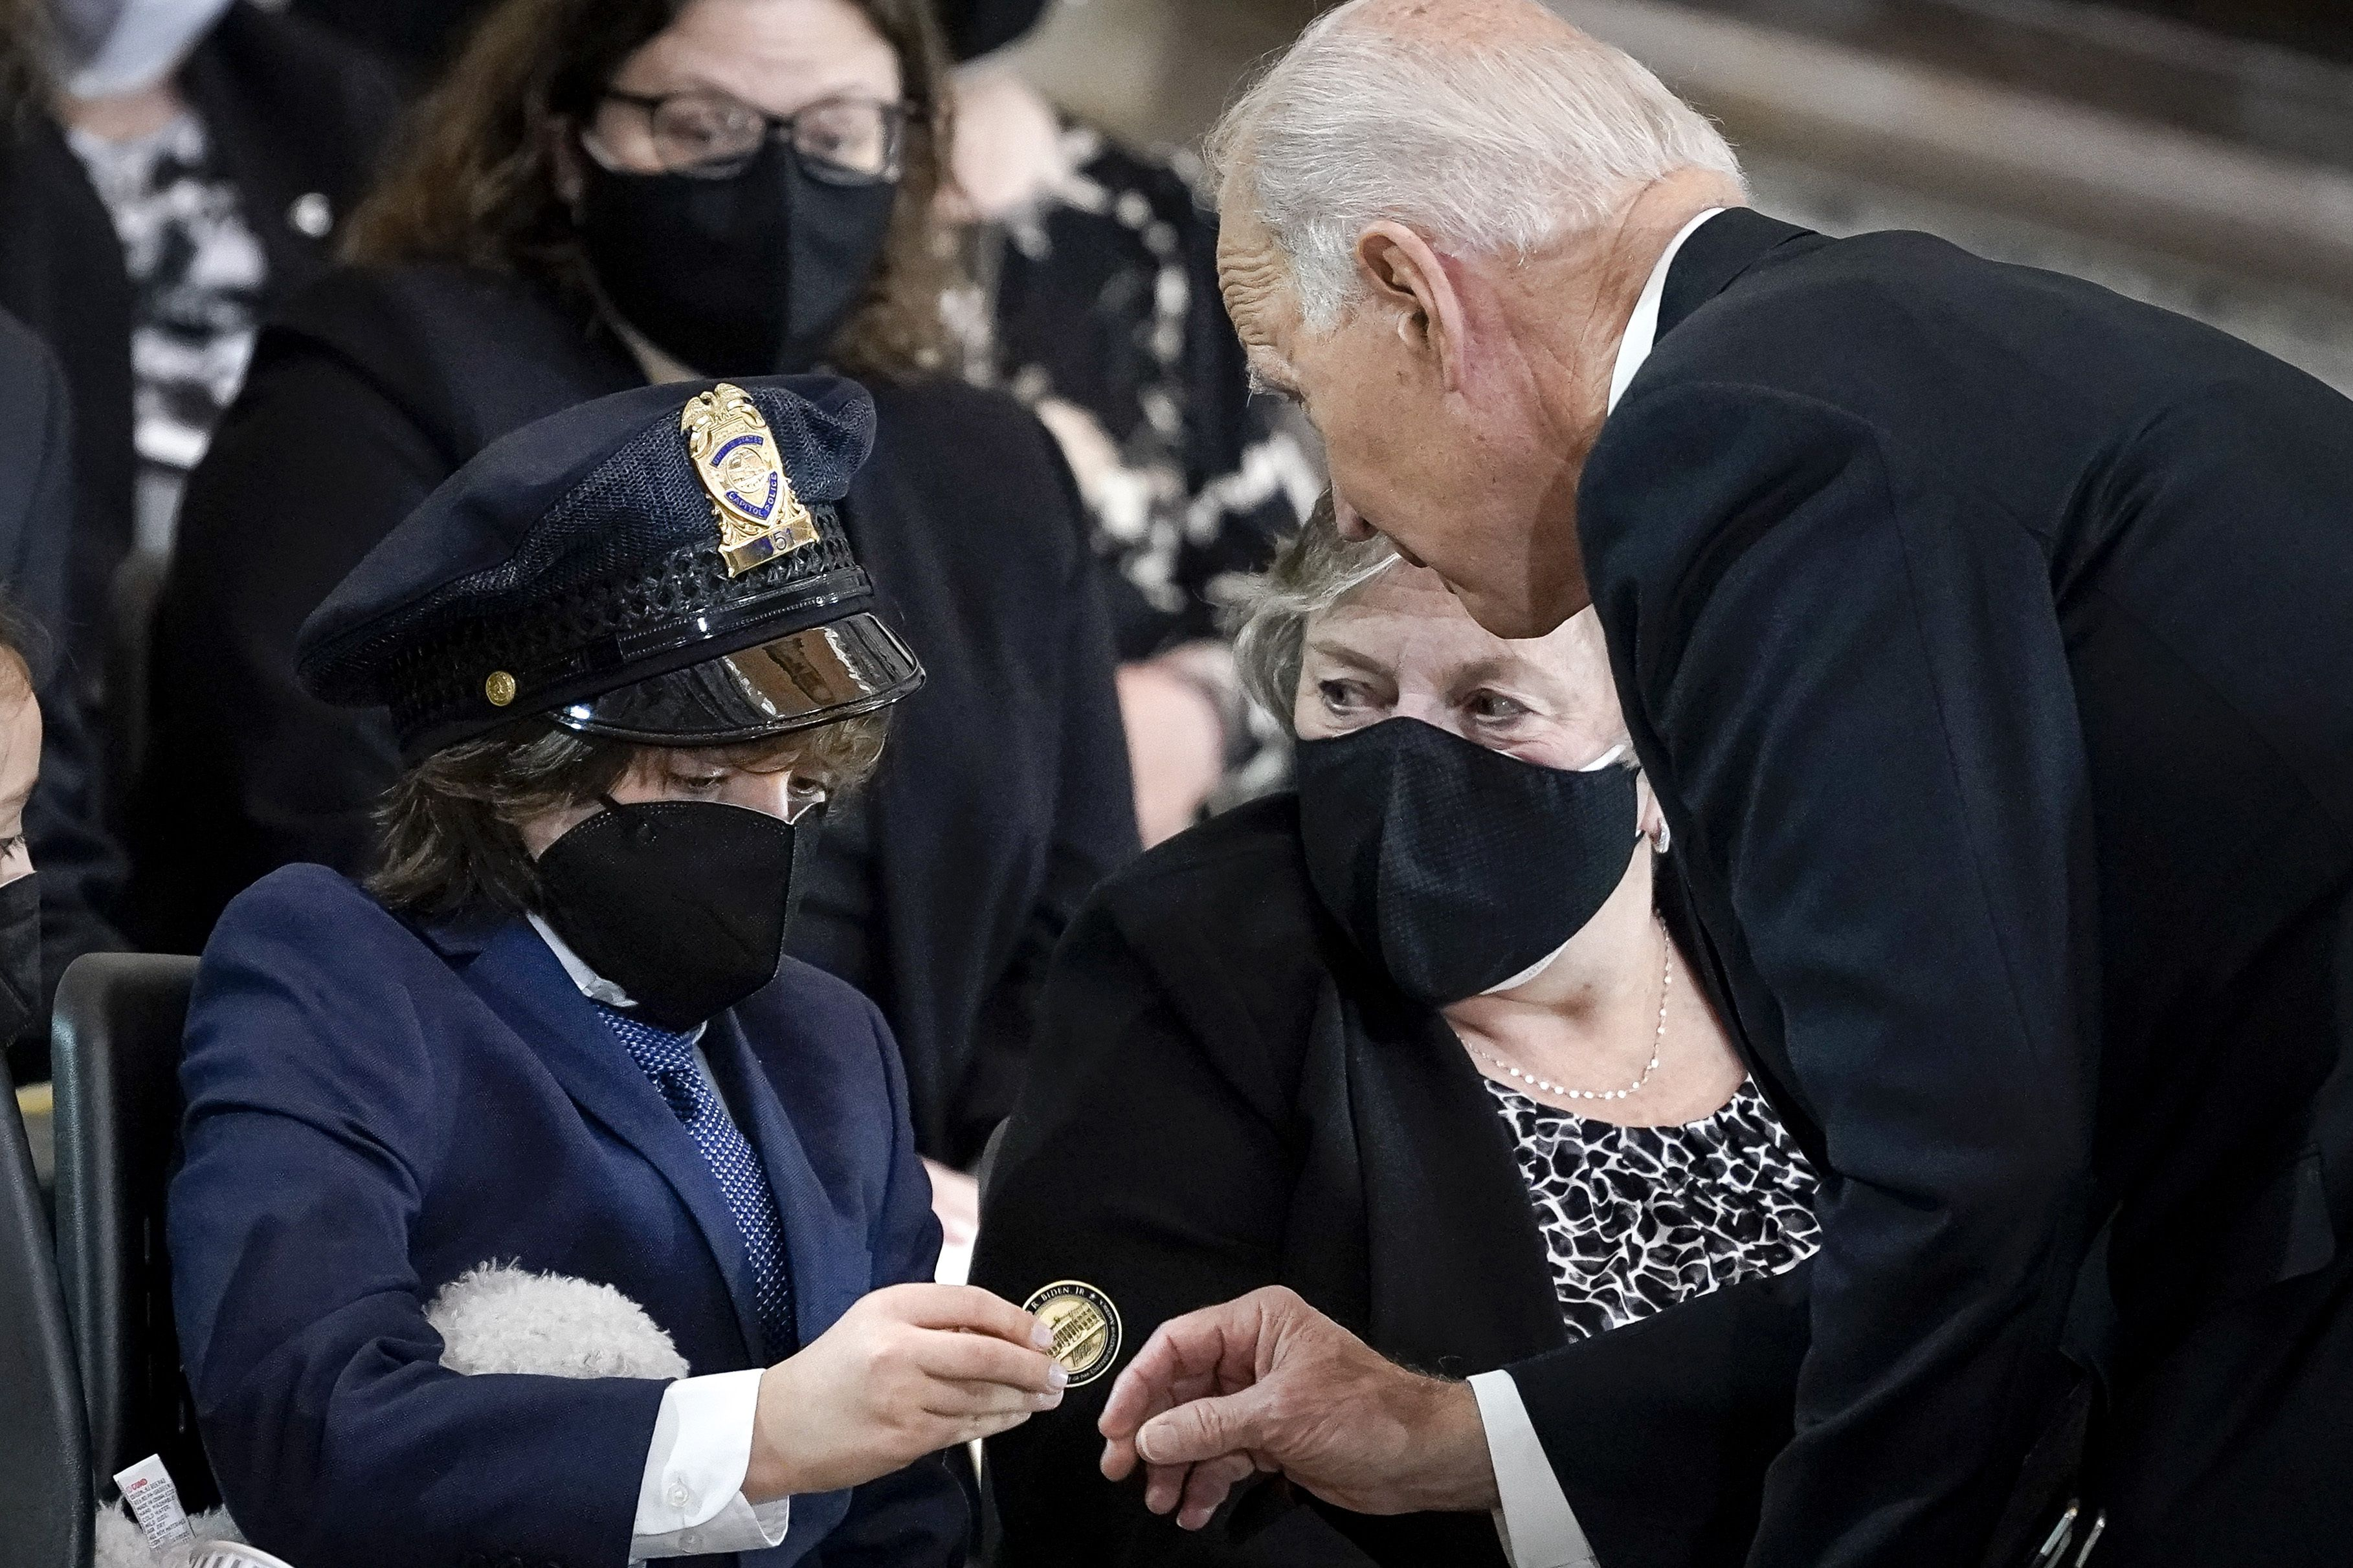 Biden works to balance civil rights and criminal justice